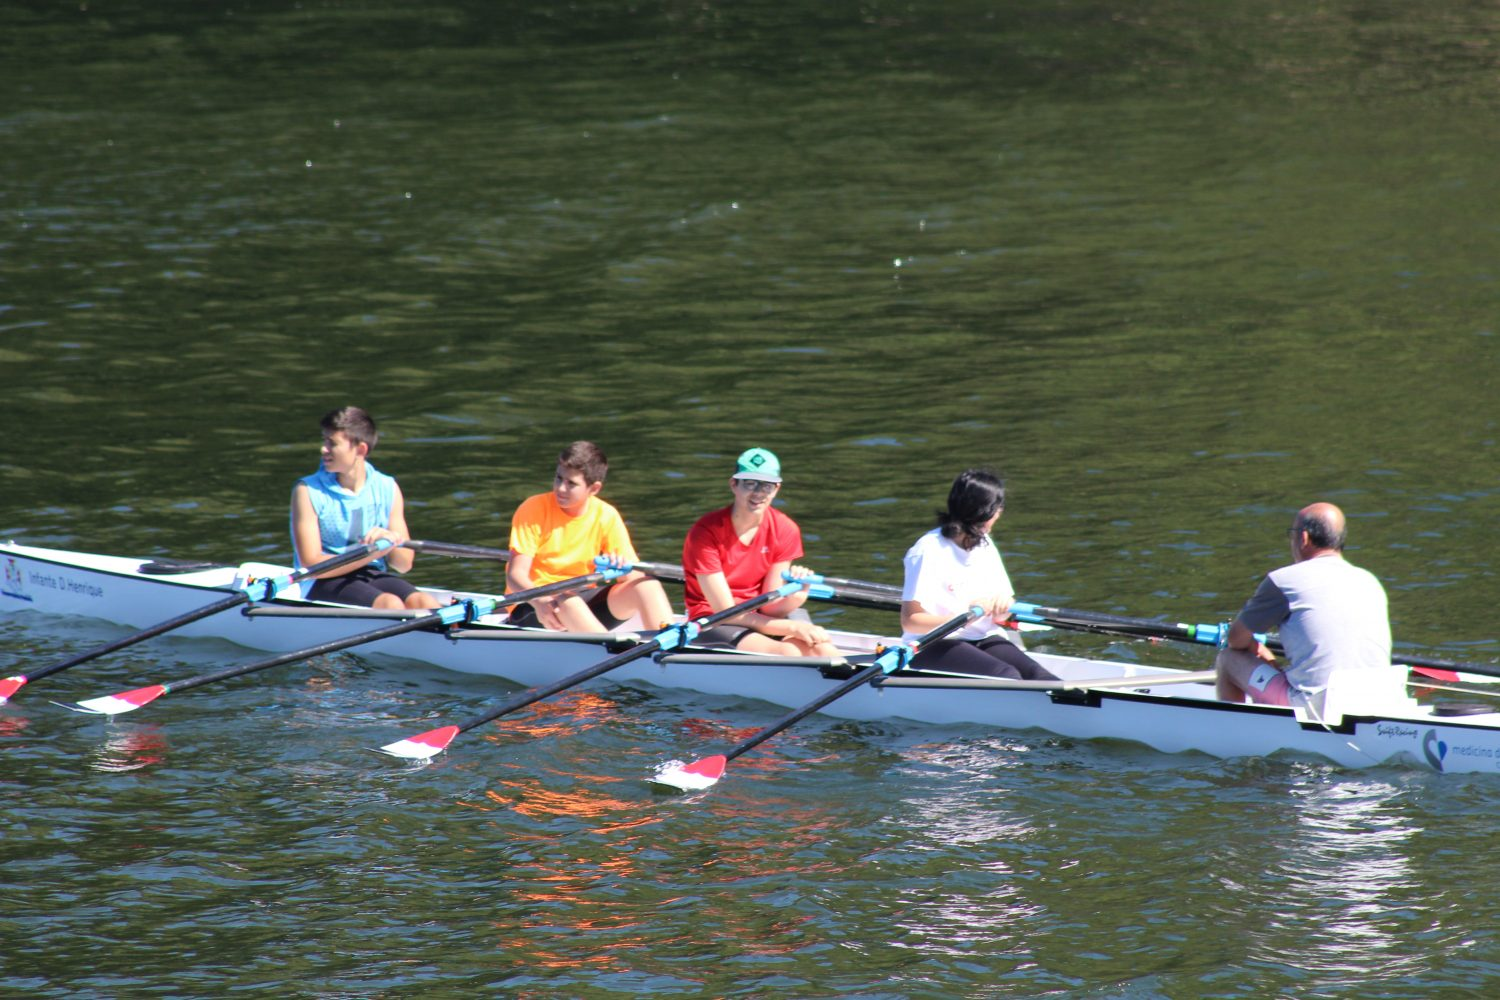 Group sport at douro river